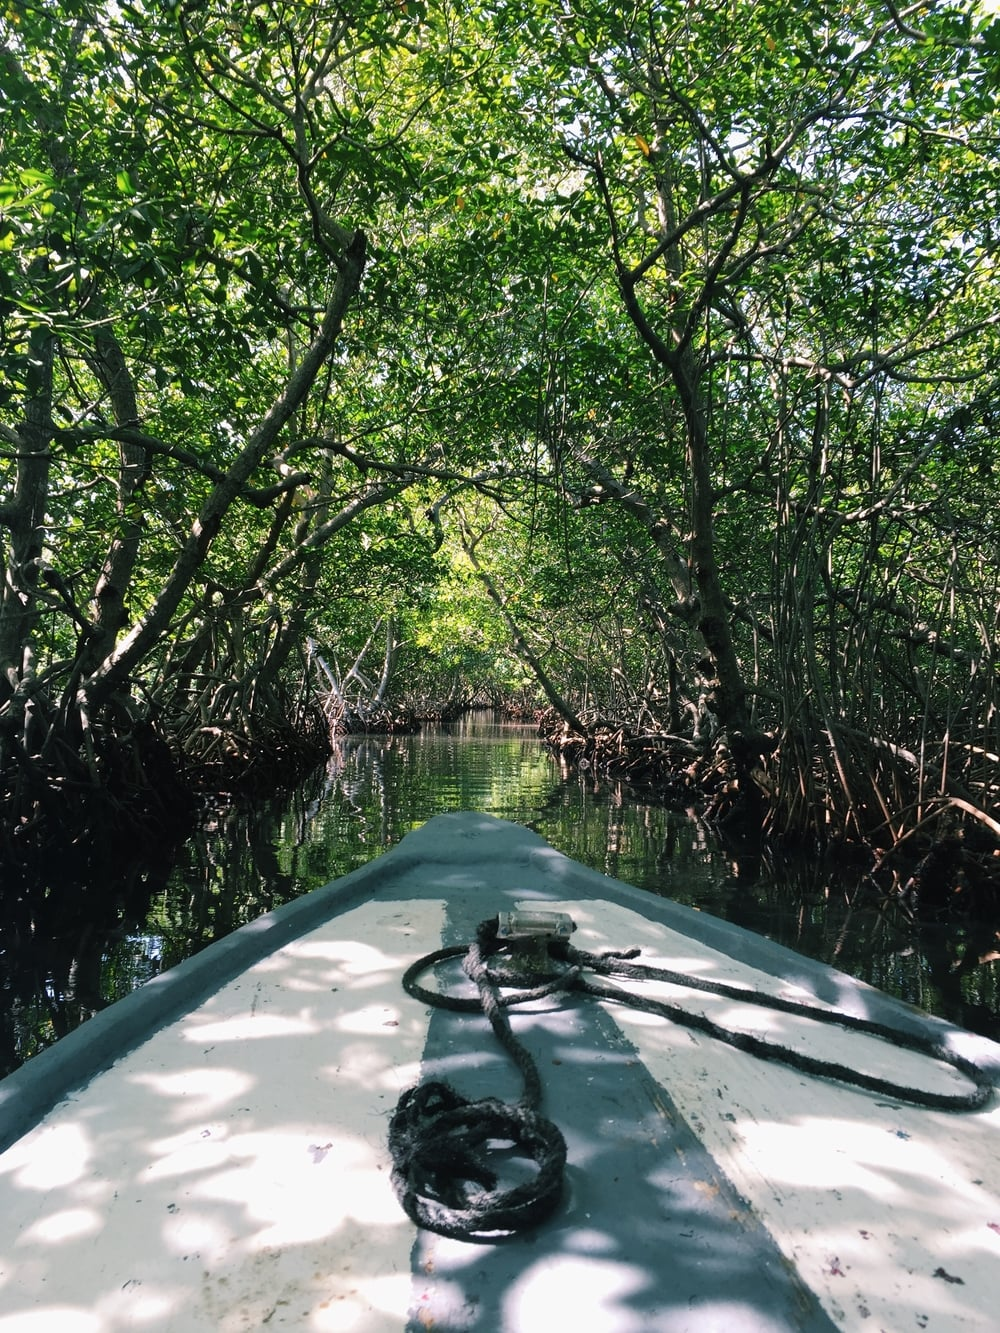 We took a tour of the mangroves!